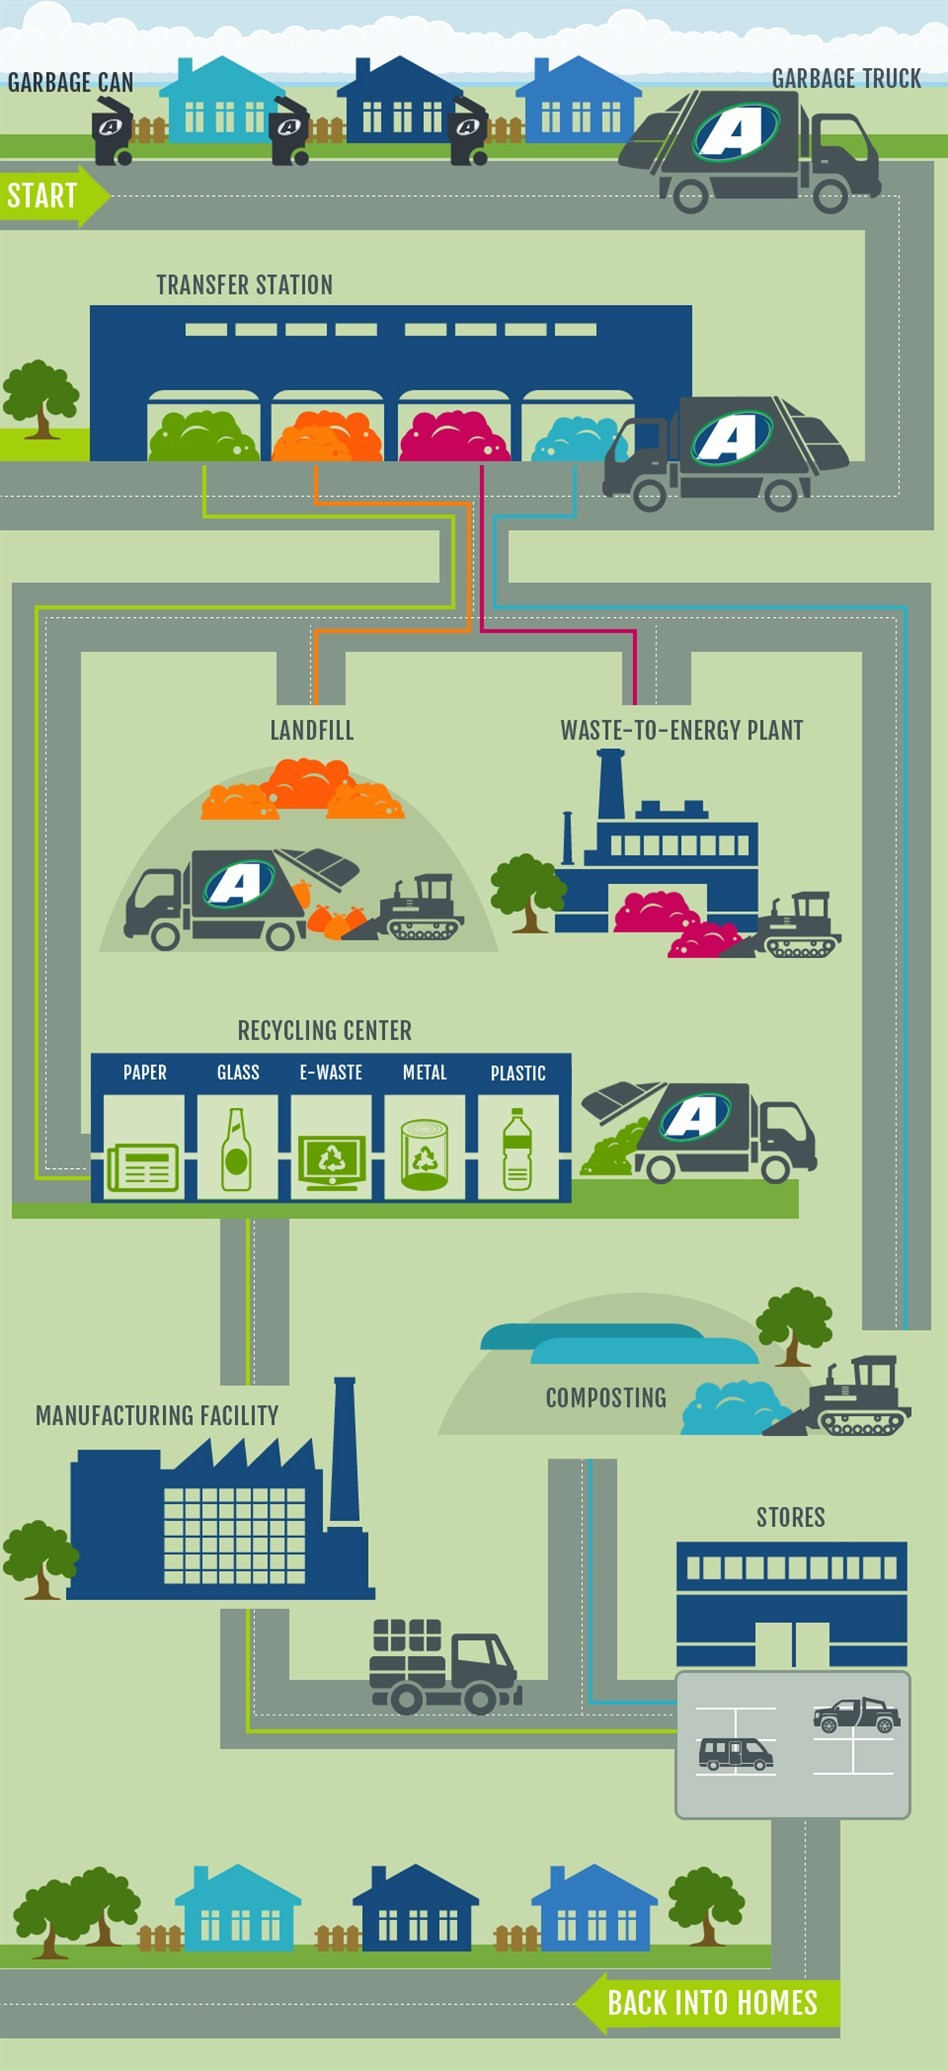 Garbage Truck Diagram Life Cycle Of Trash Of Garbage Truck Diagram